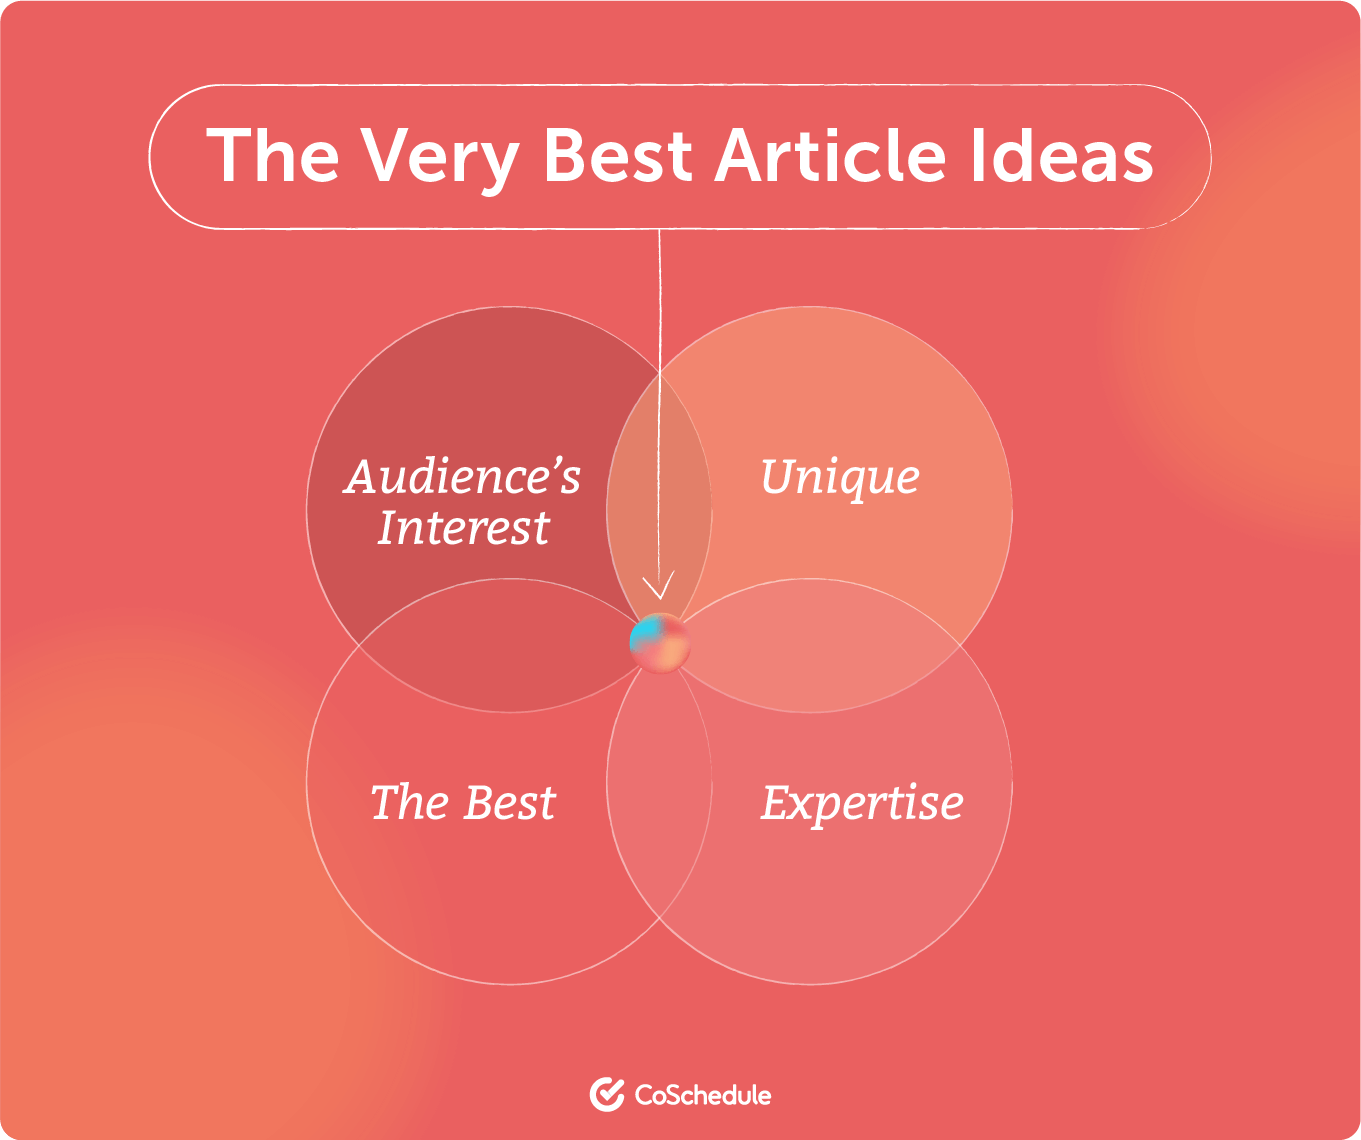 The very best article ideas